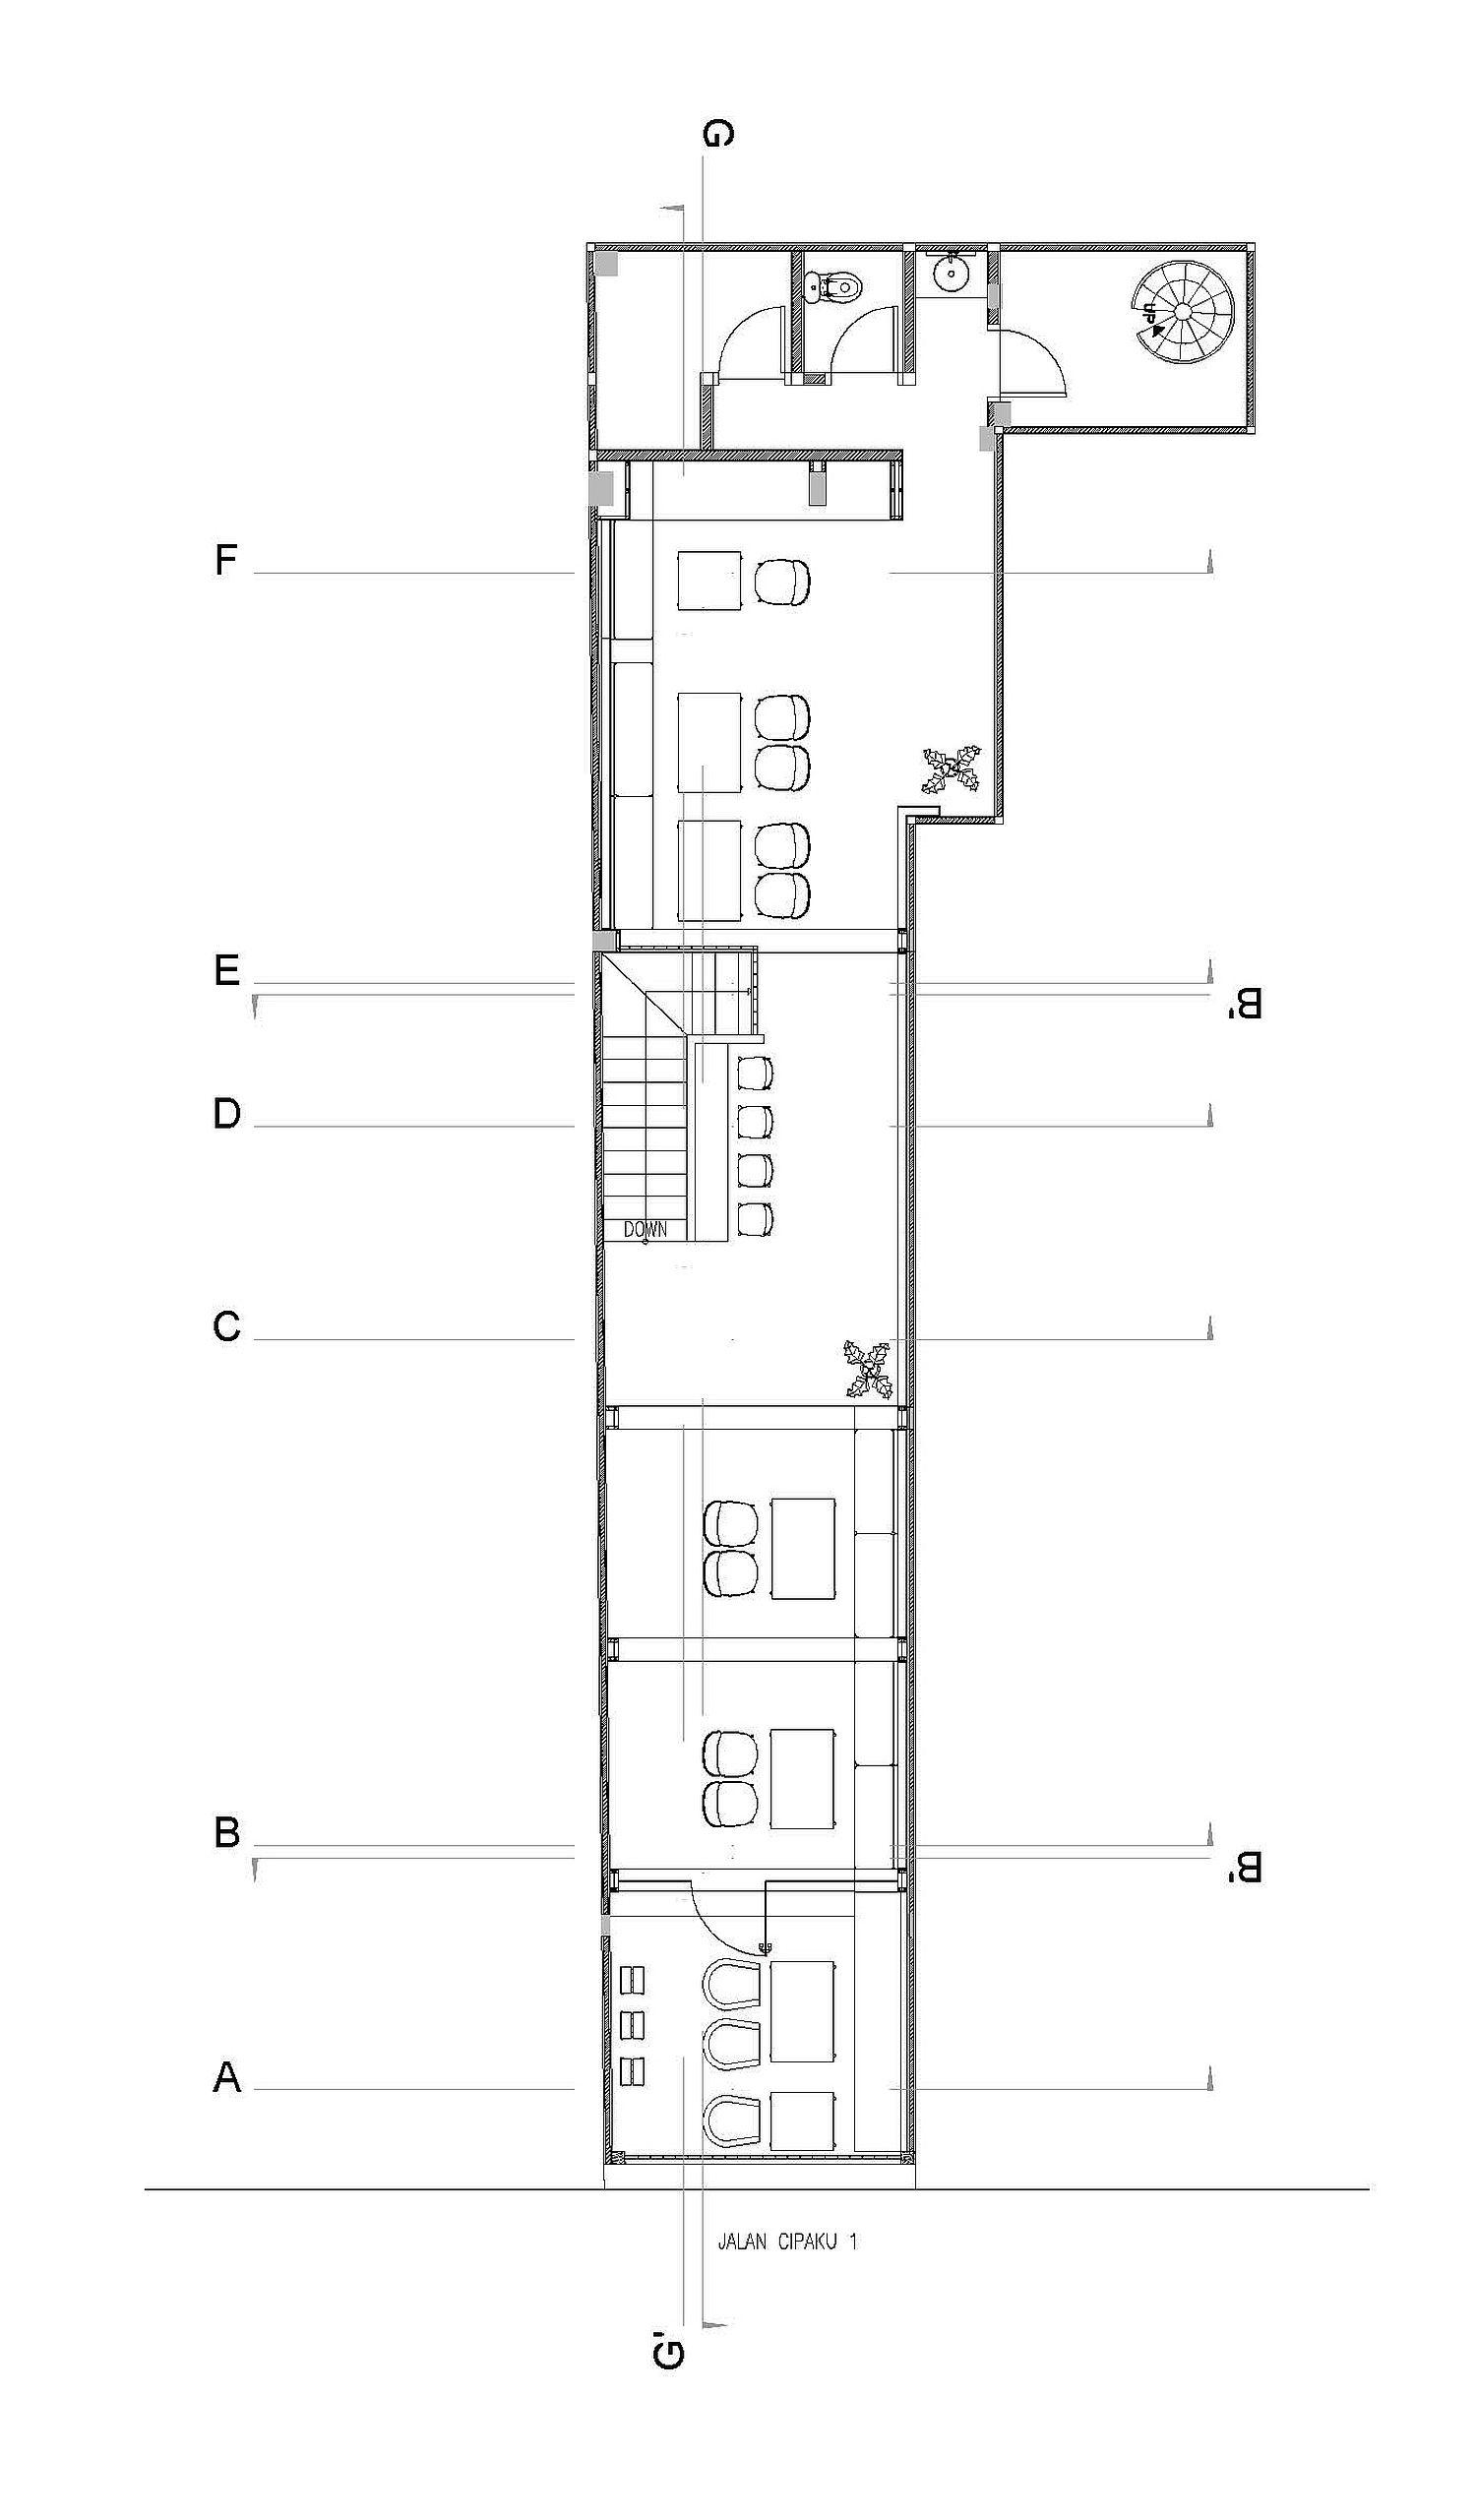 Second floor design plan of Cliq Coffee